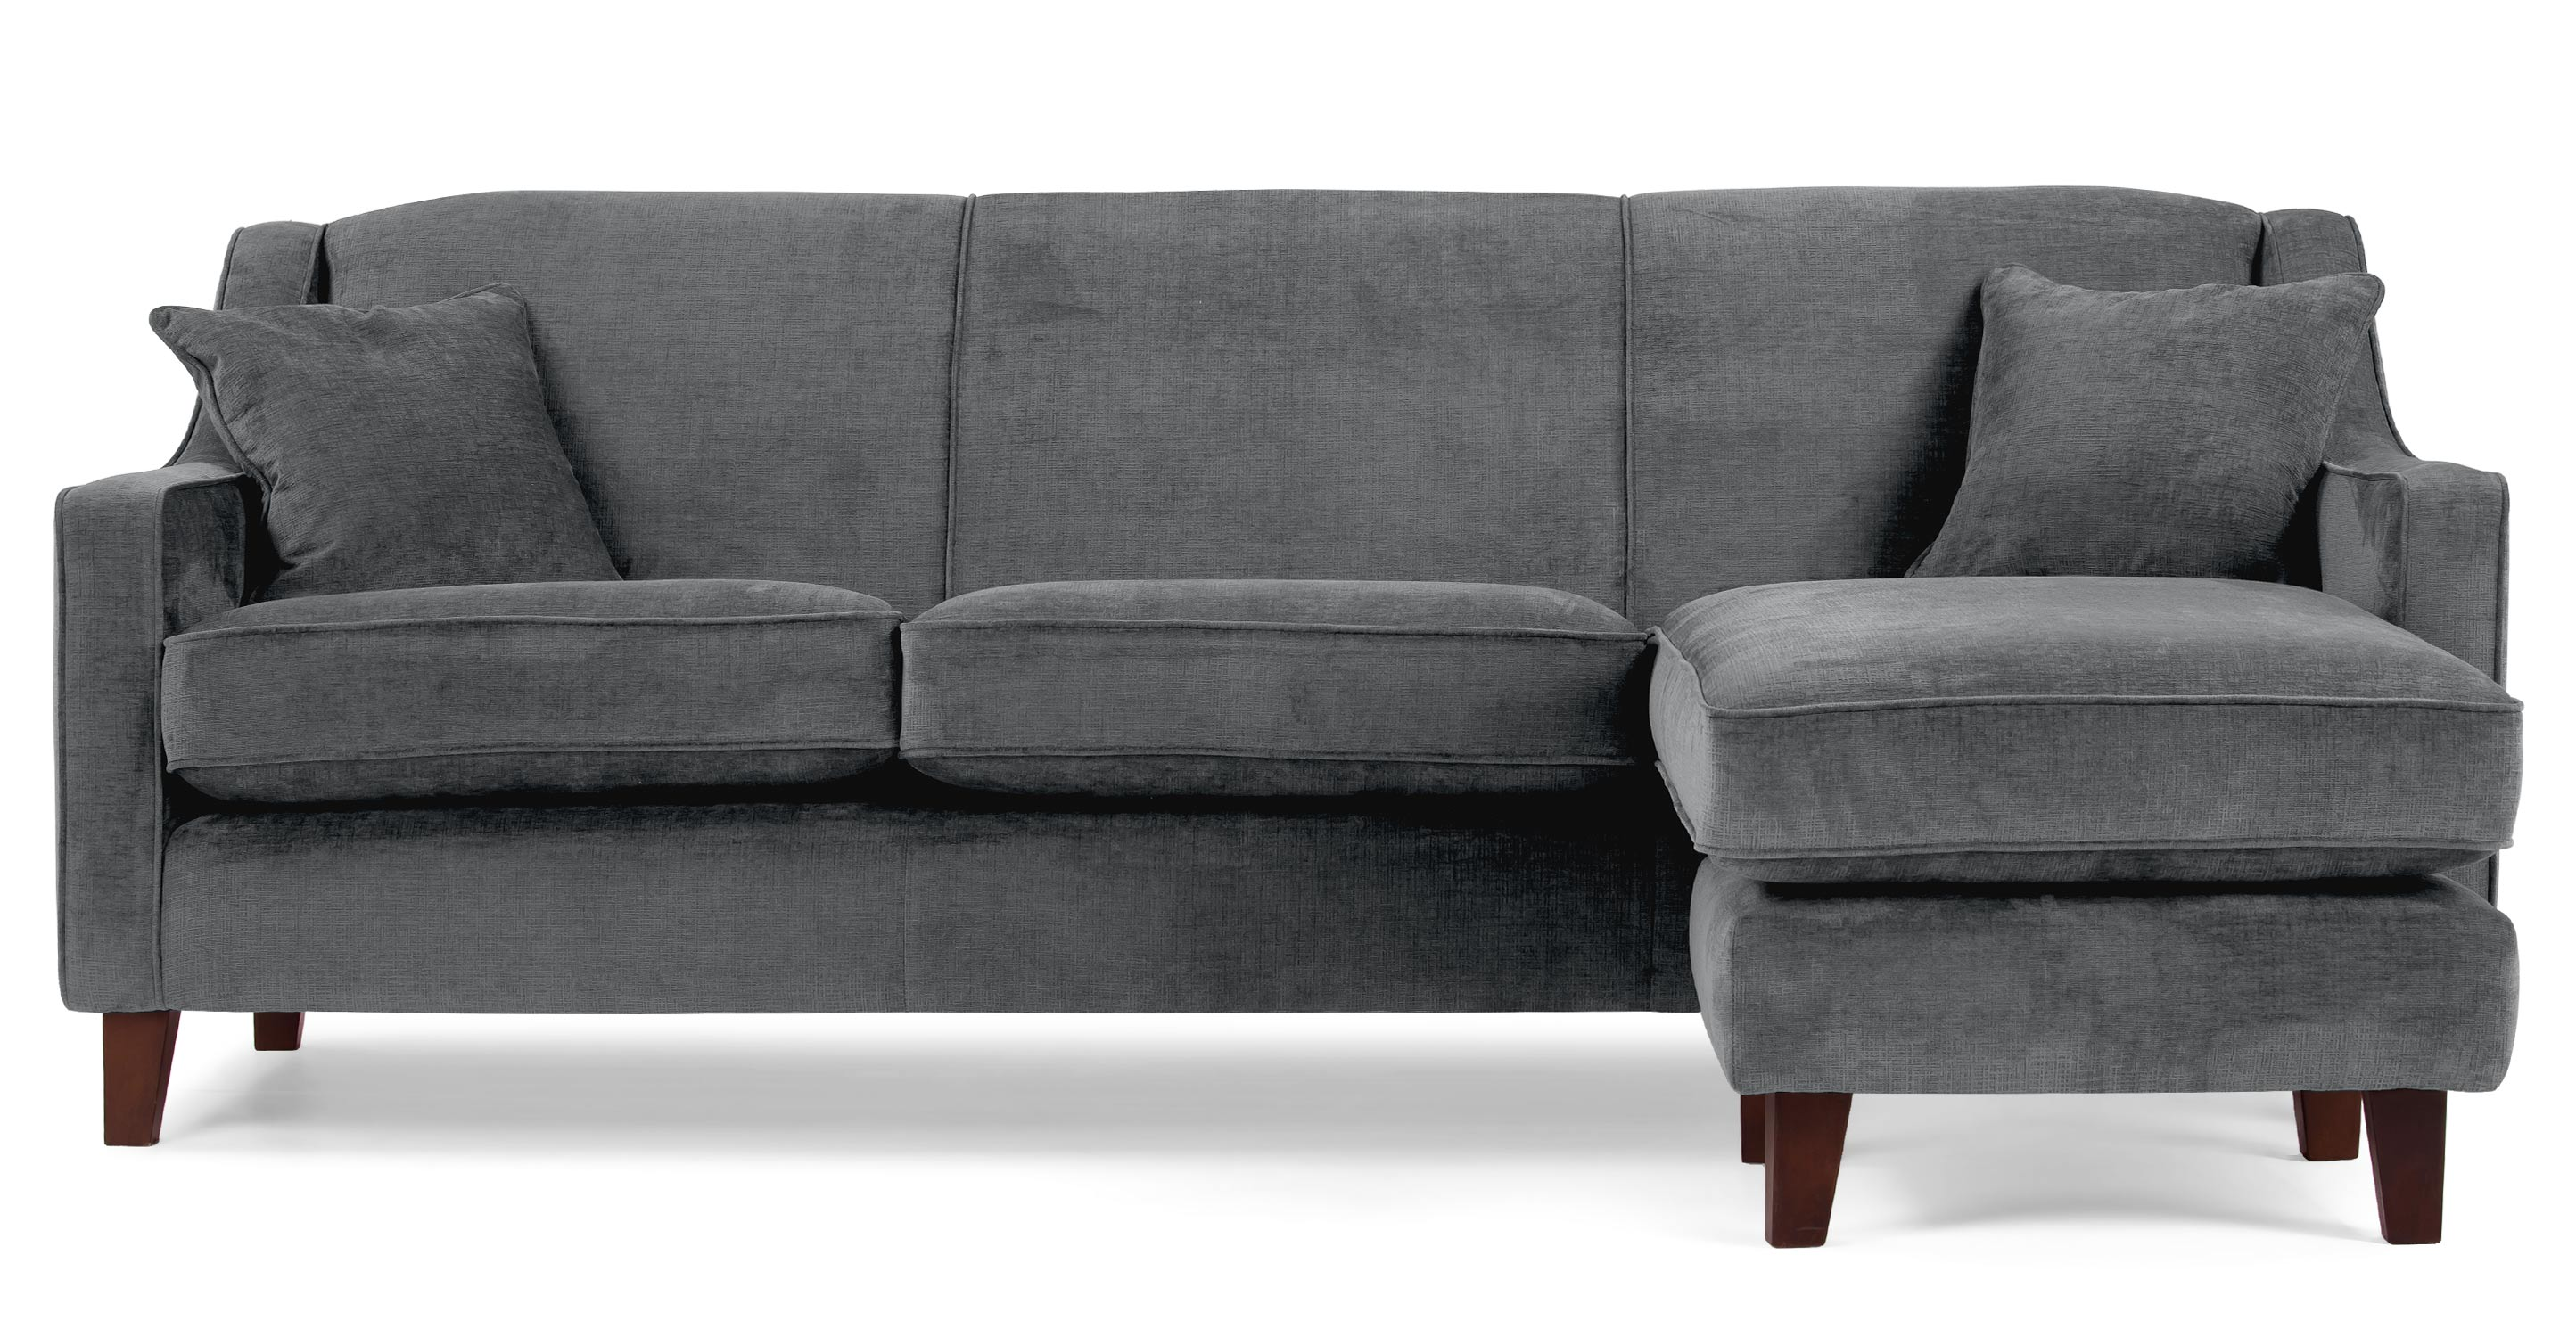 halston large corner sofa in dusk grey. Black Bedroom Furniture Sets. Home Design Ideas